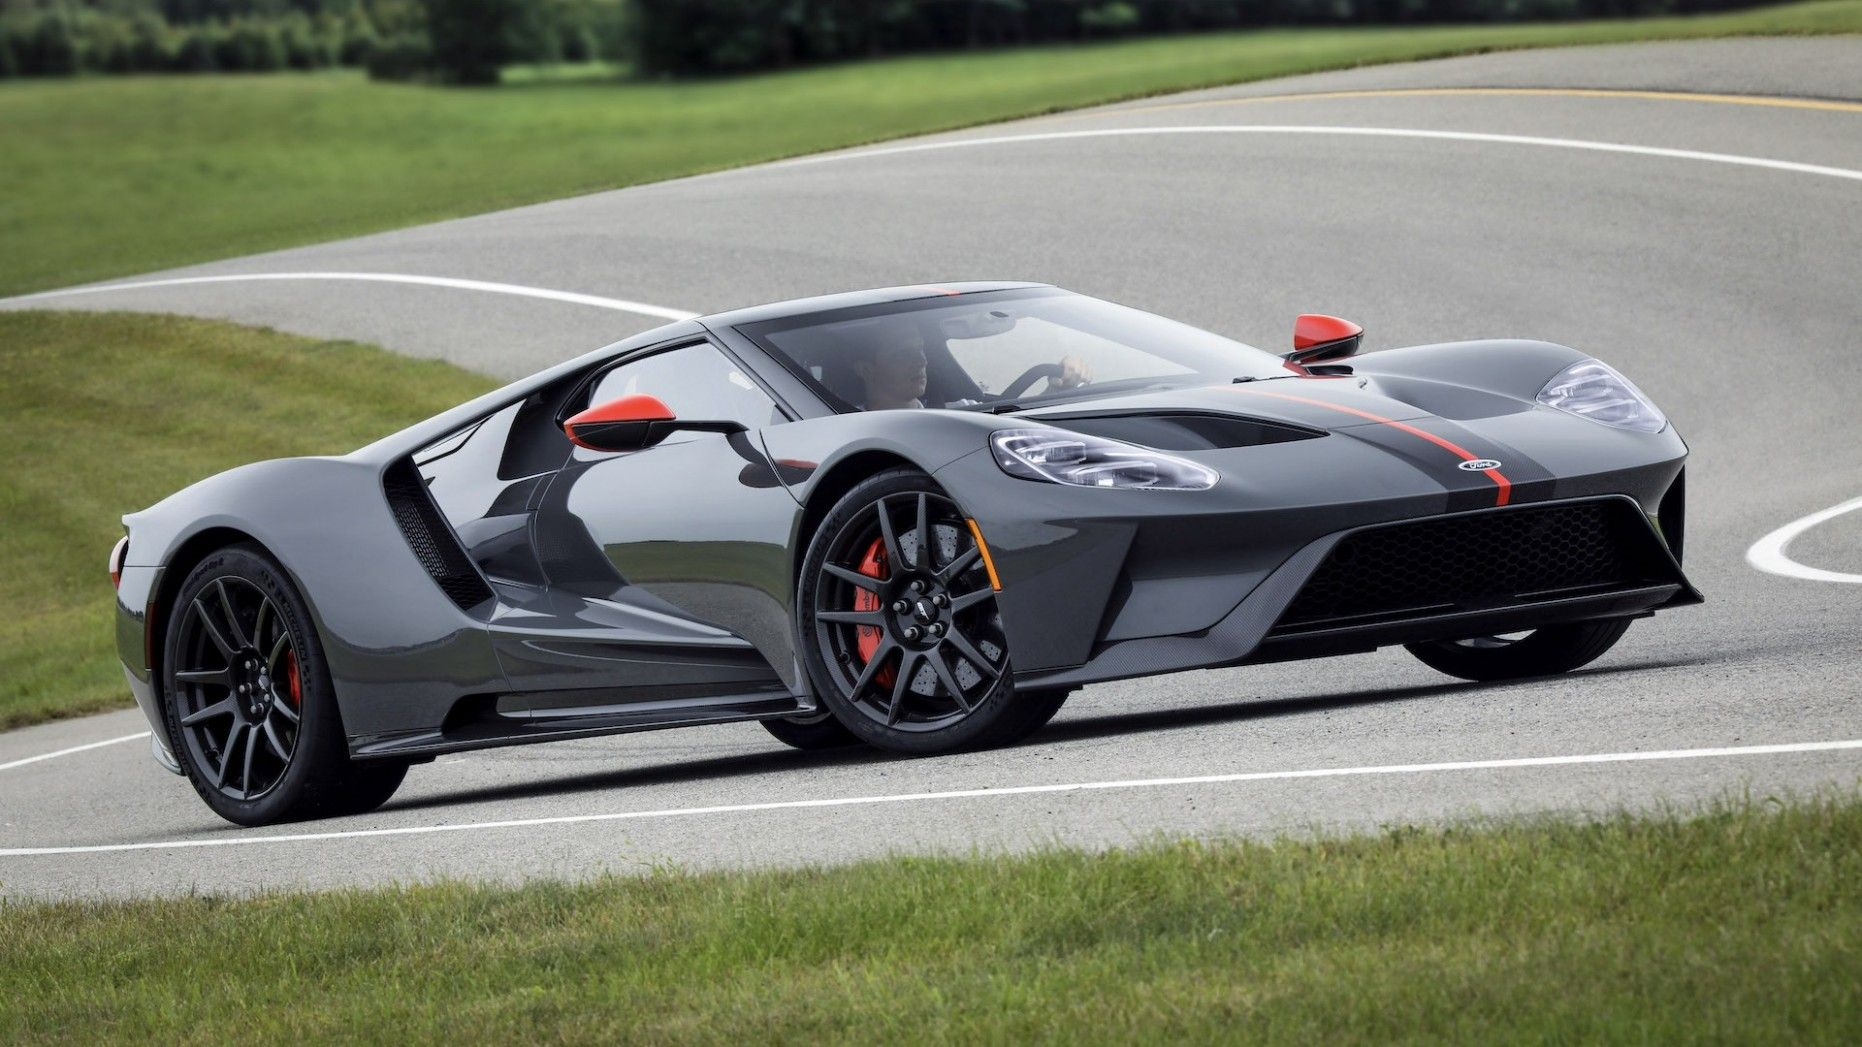 2021 Ford Gt40 Spesification Ford Gt Ford Sports Cars Ford Gt40